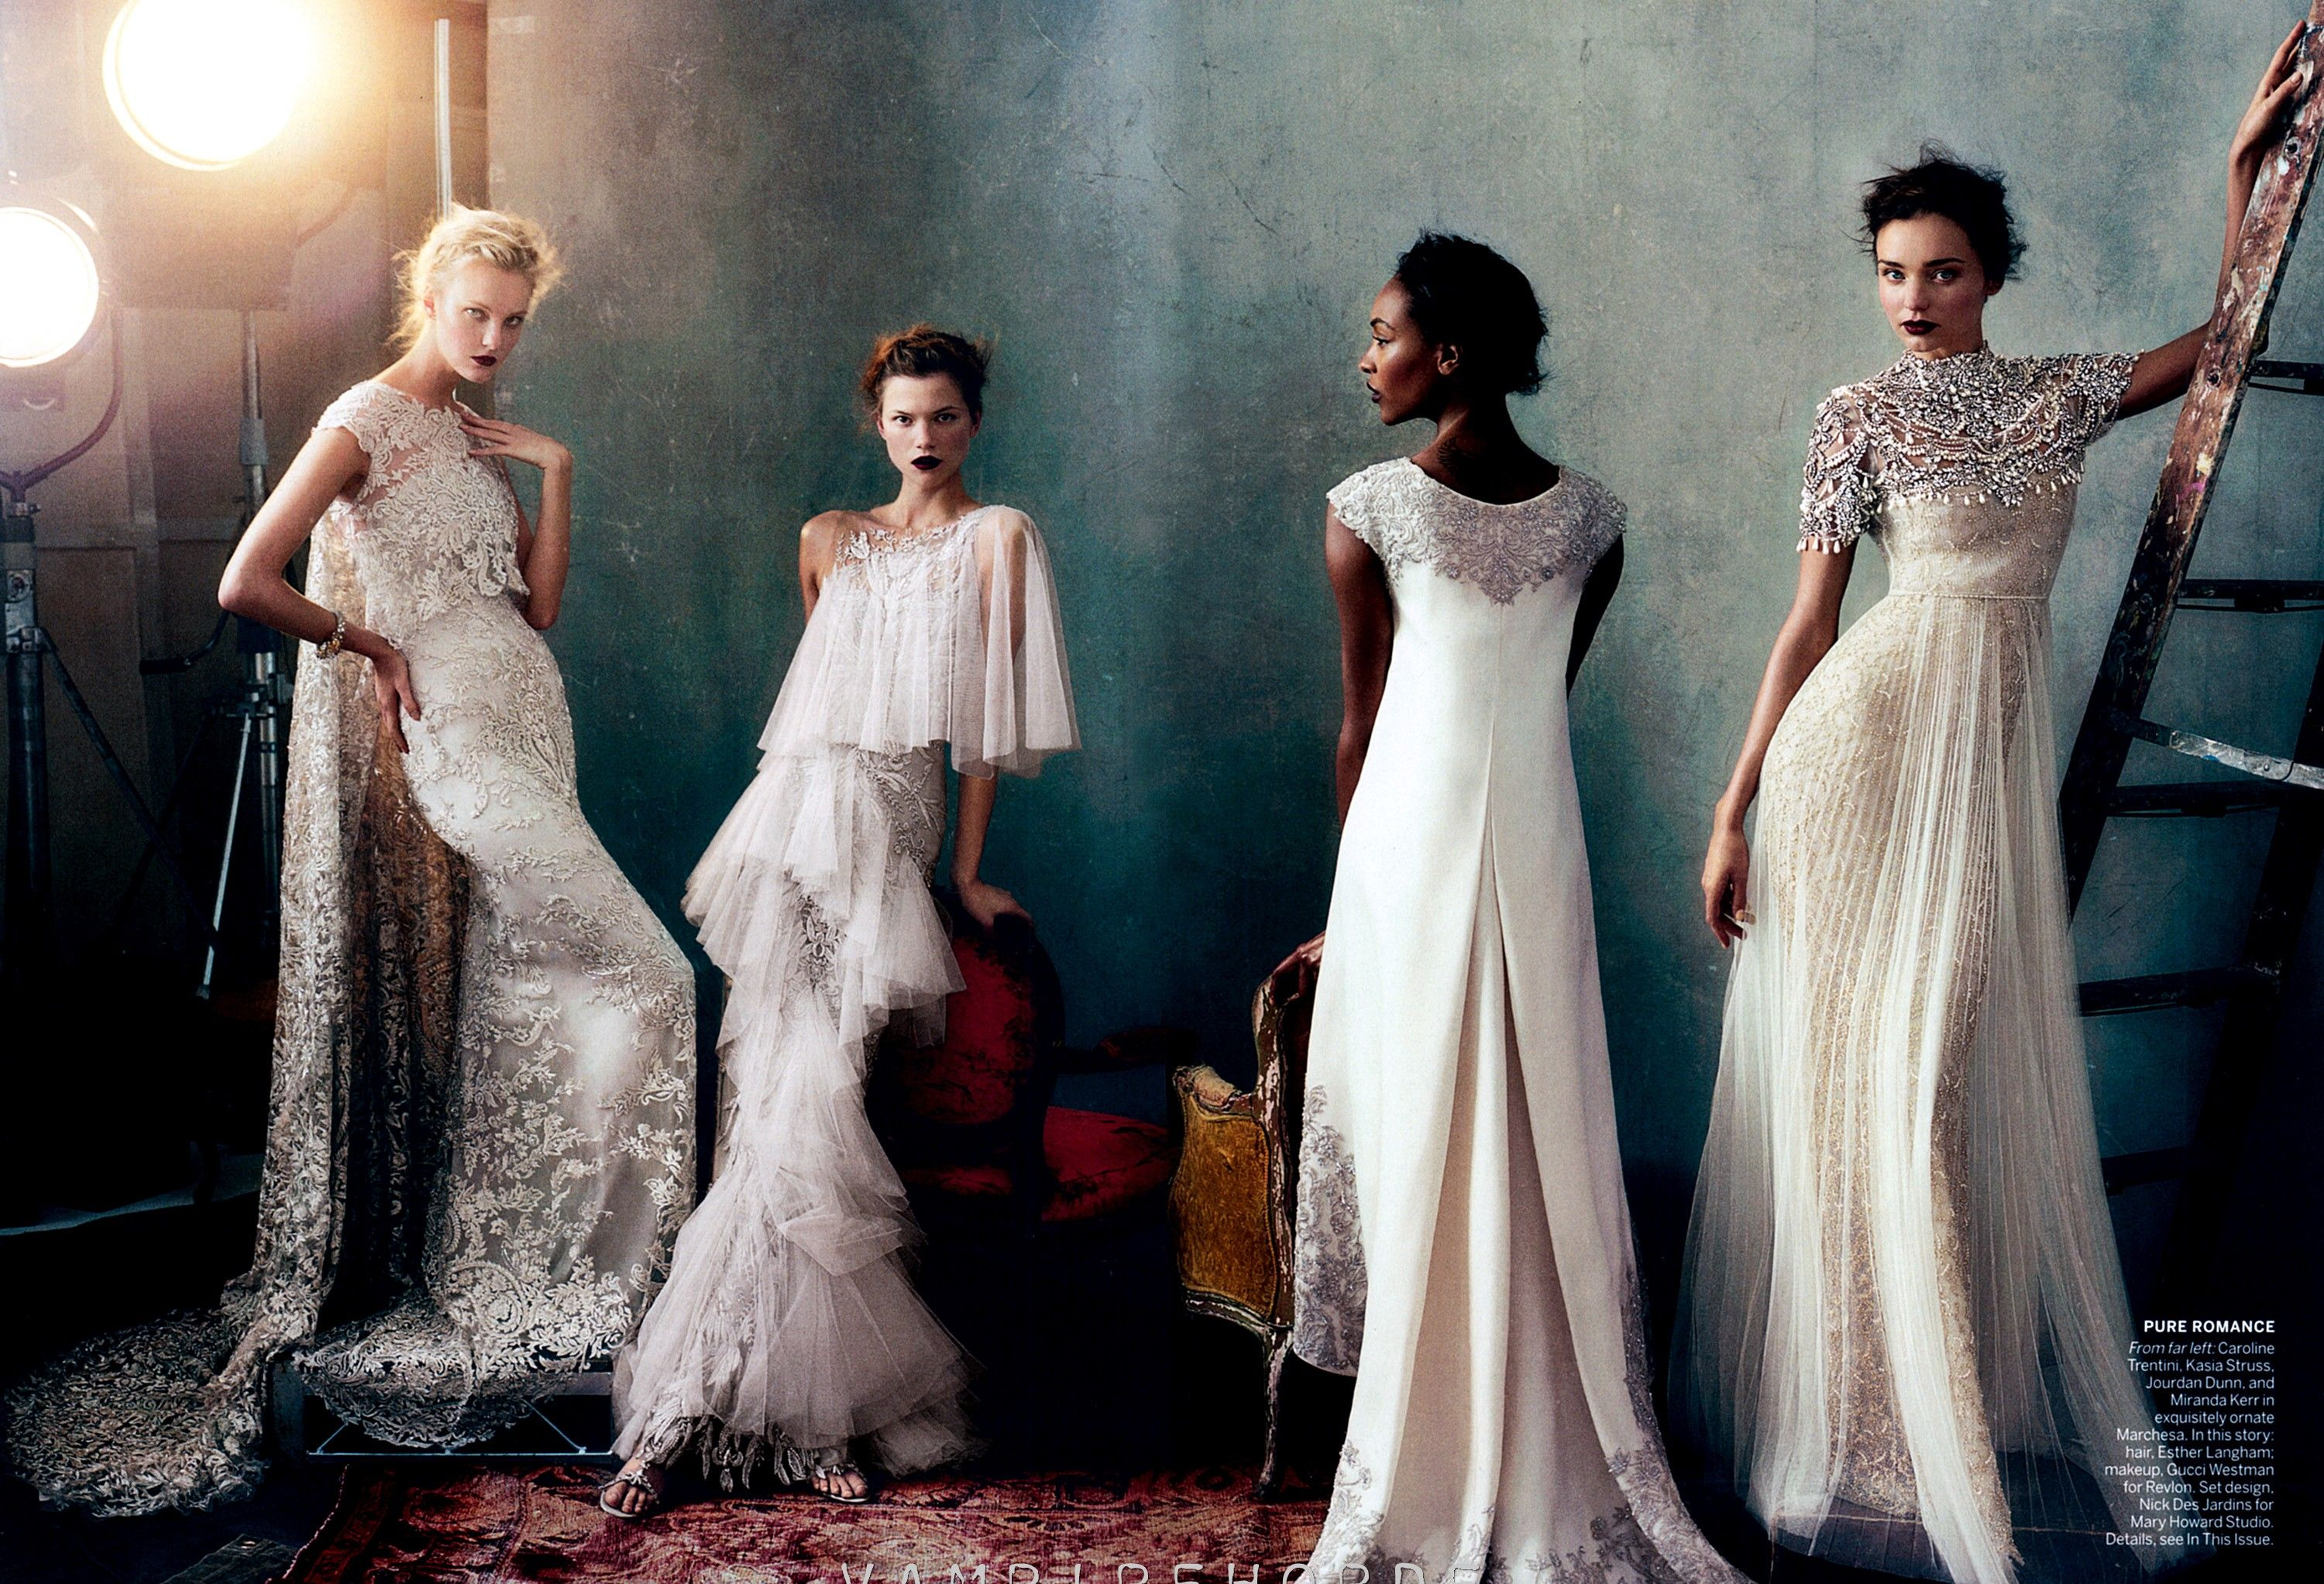 Vogue photoshoot february 2013 marchesa gowns memorable marchesa dresses in vogue february 2013 ombrellifo Images